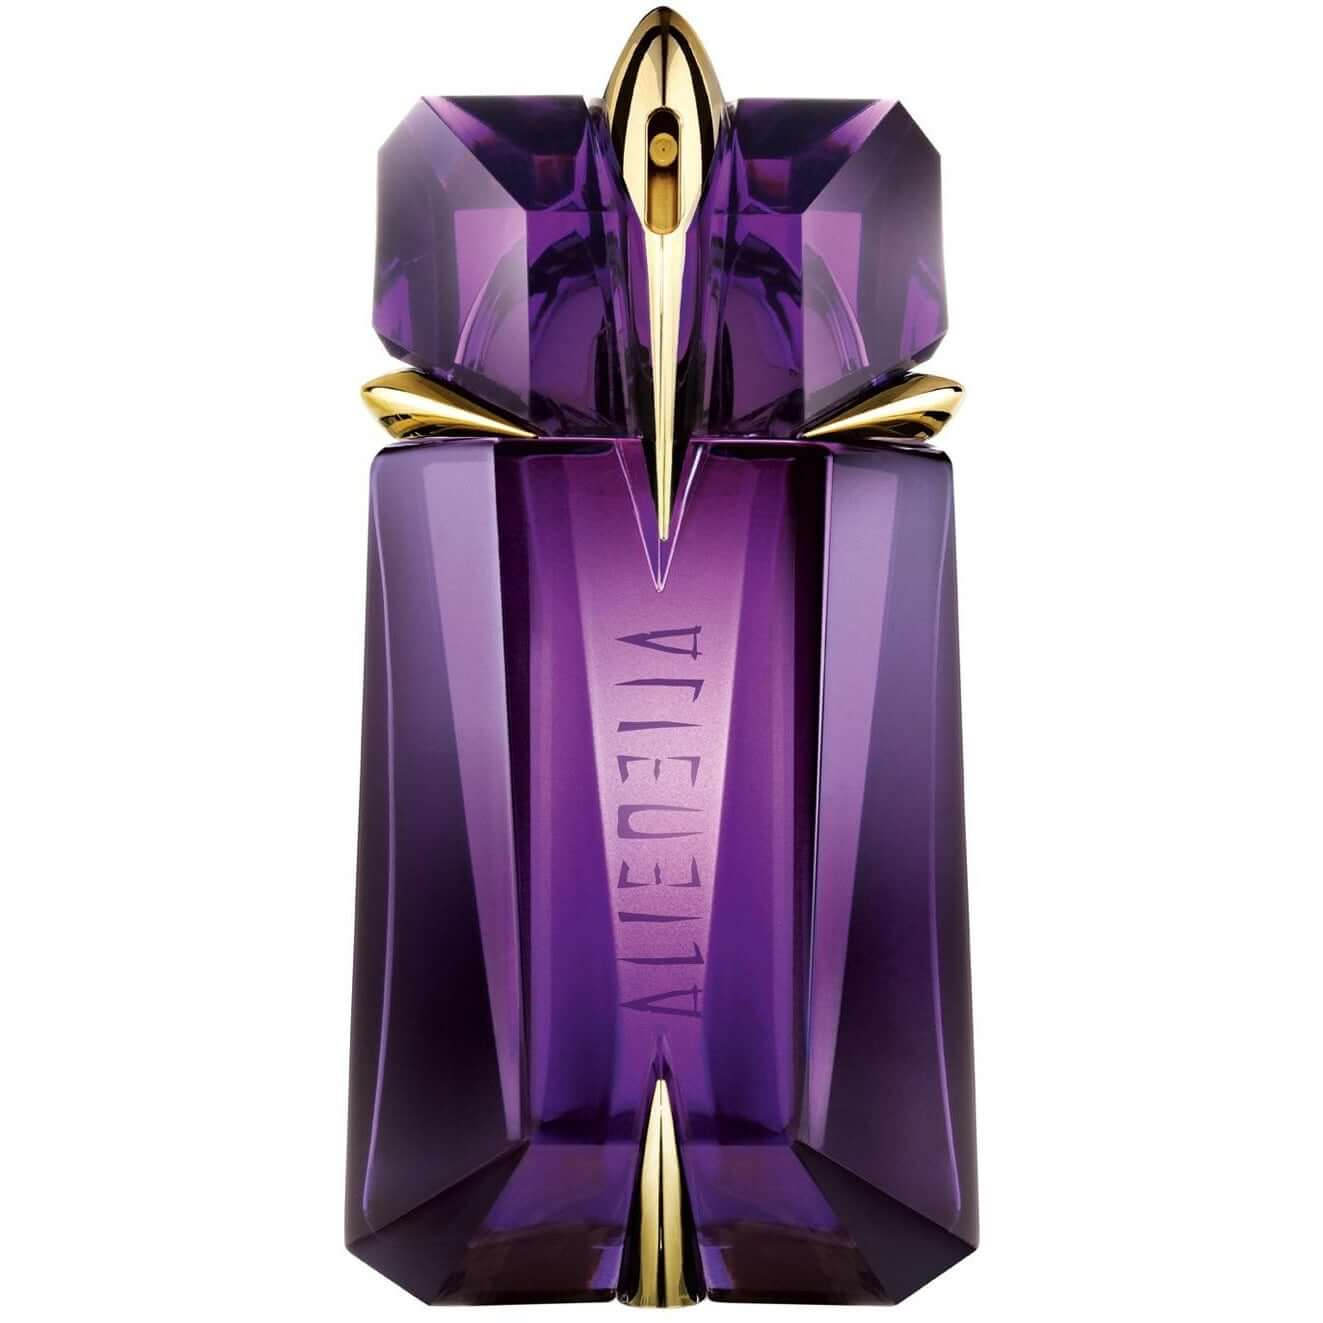 alien-thierry-mugler-edp-women-perfume-3-0-oz-tester-with-cap